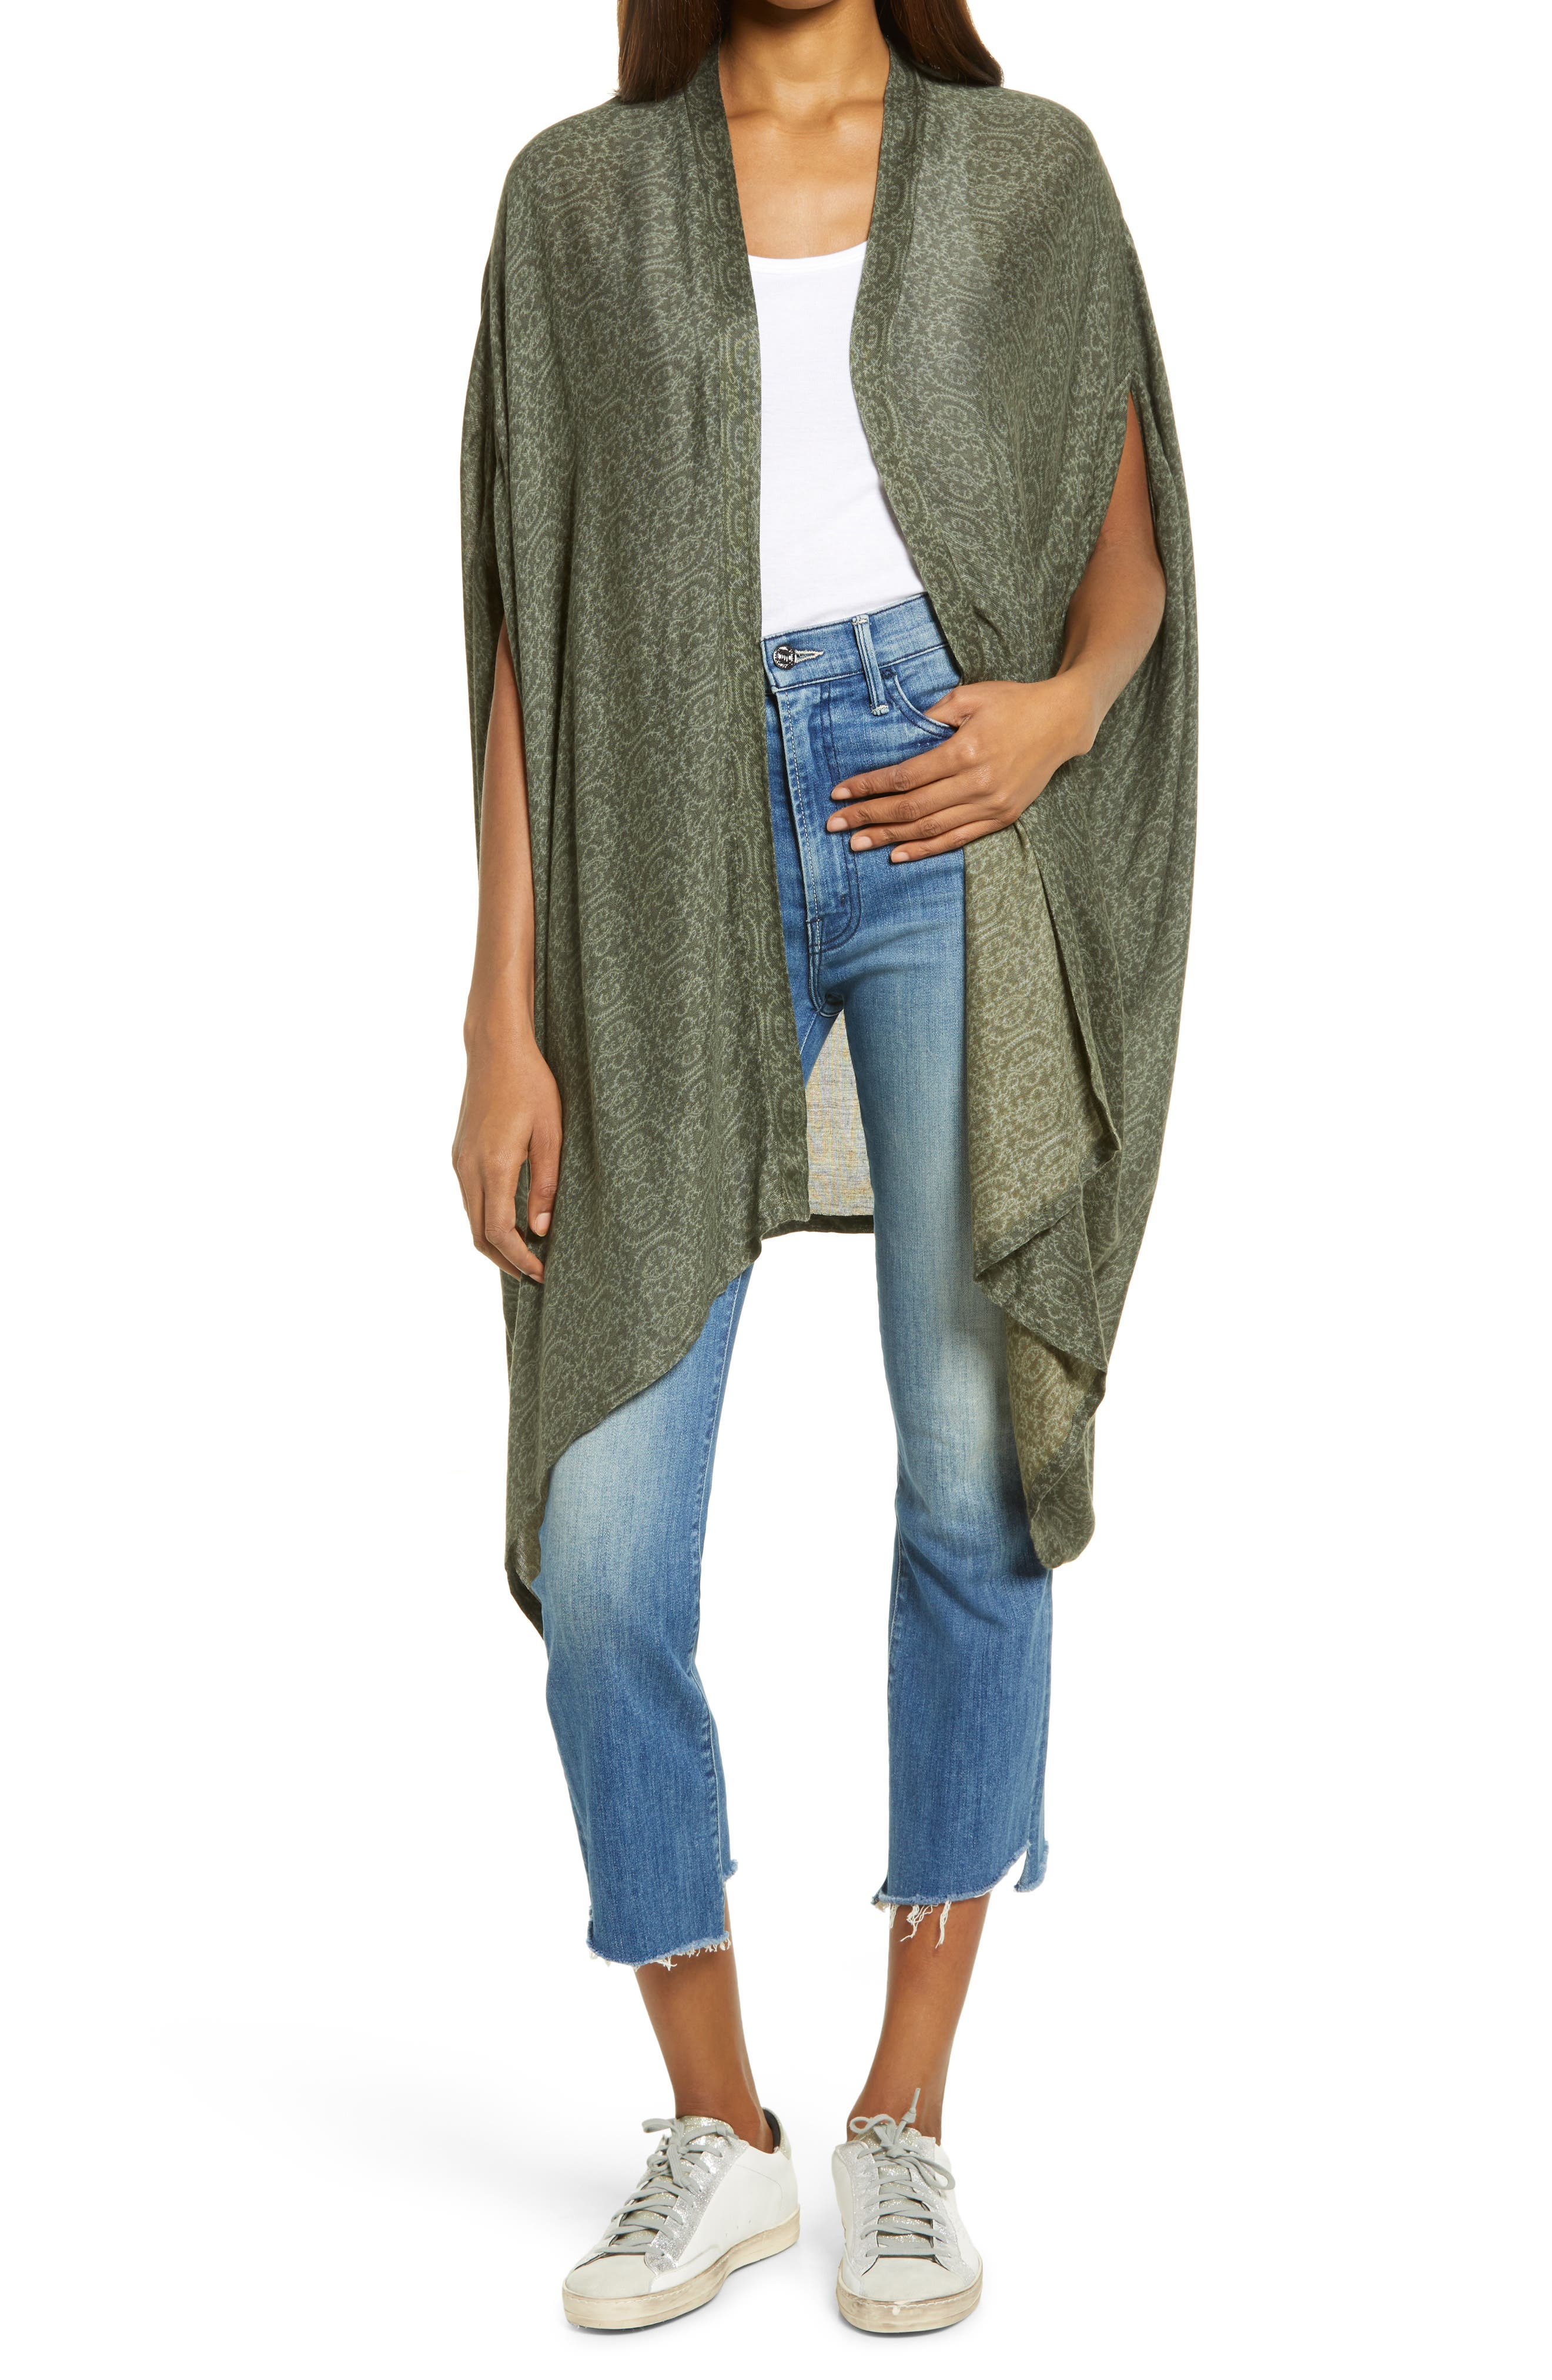 Poncho shawl Pale pink and cream pure wool Plus size wrap,Plus size clothing poncho Cover Up